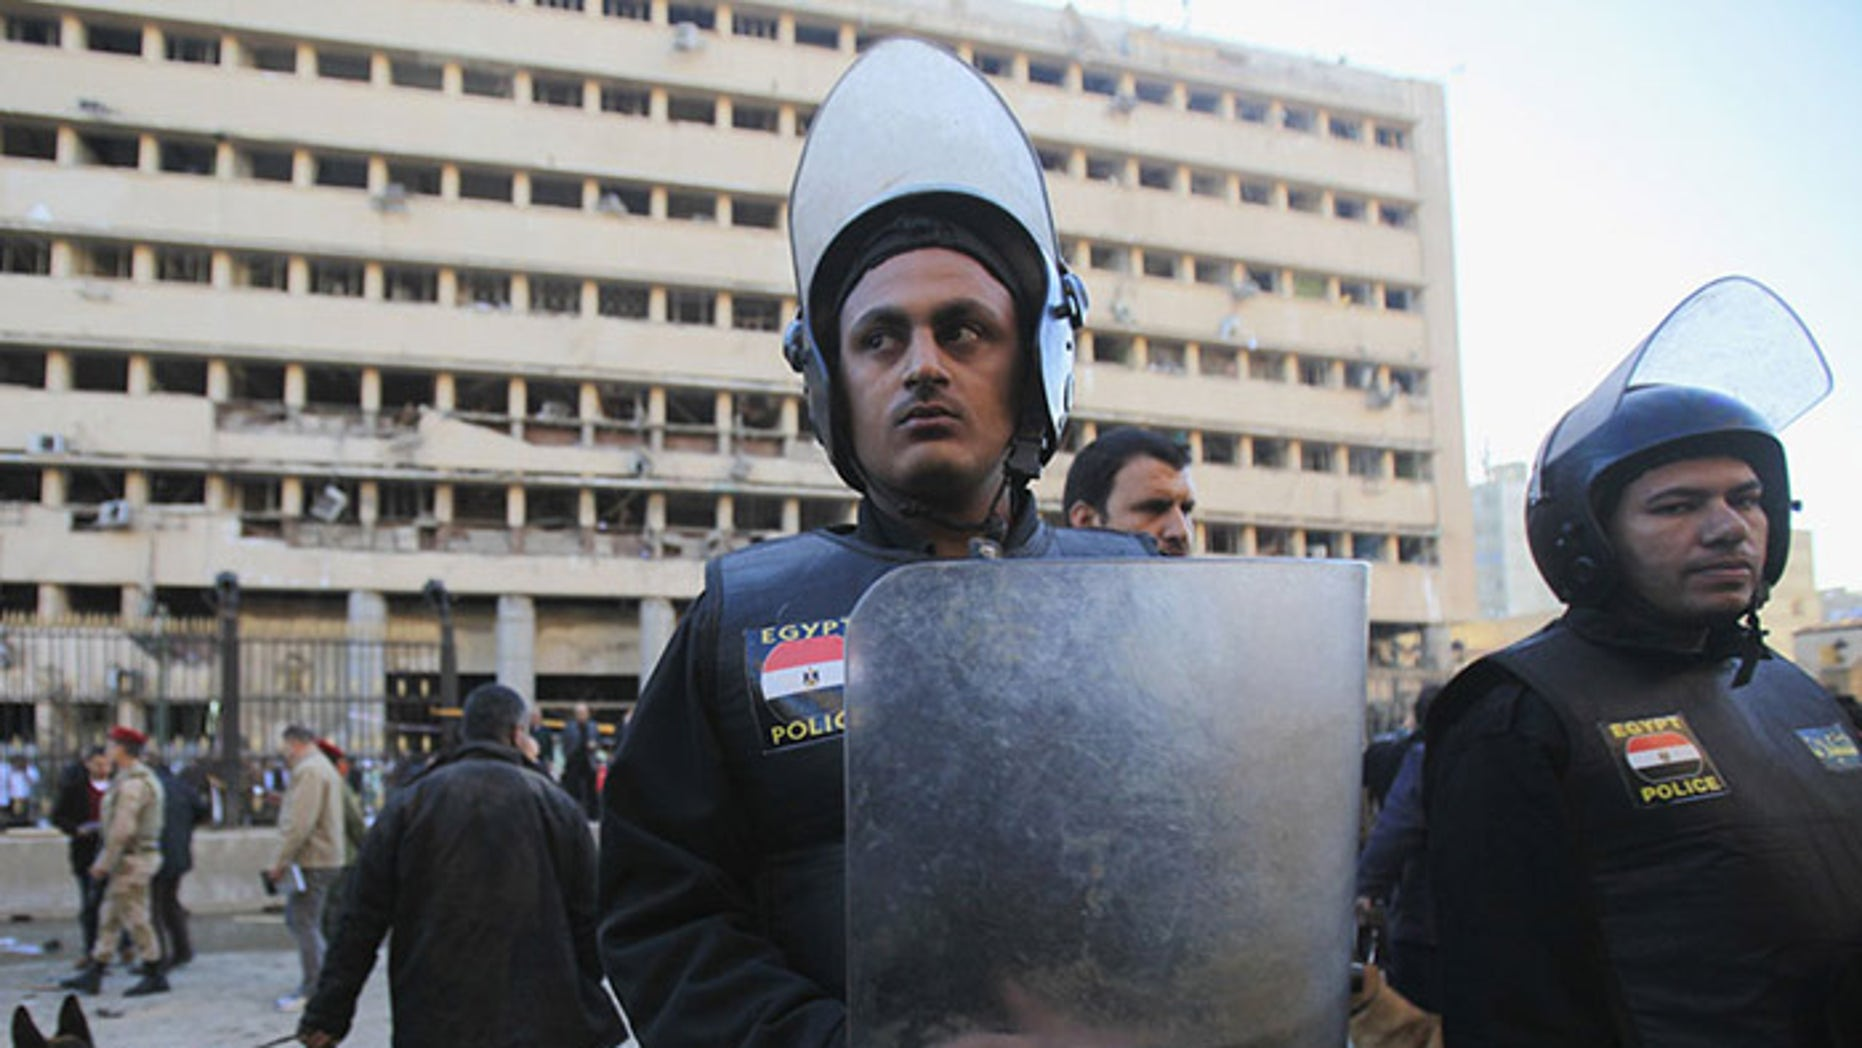 Four bombings in Egypt marked the third anniversary of the nation's revolution, which ousted Hosni Mubarak and ushered in the brief tenure of Mohammad Morsi. (Reuters)